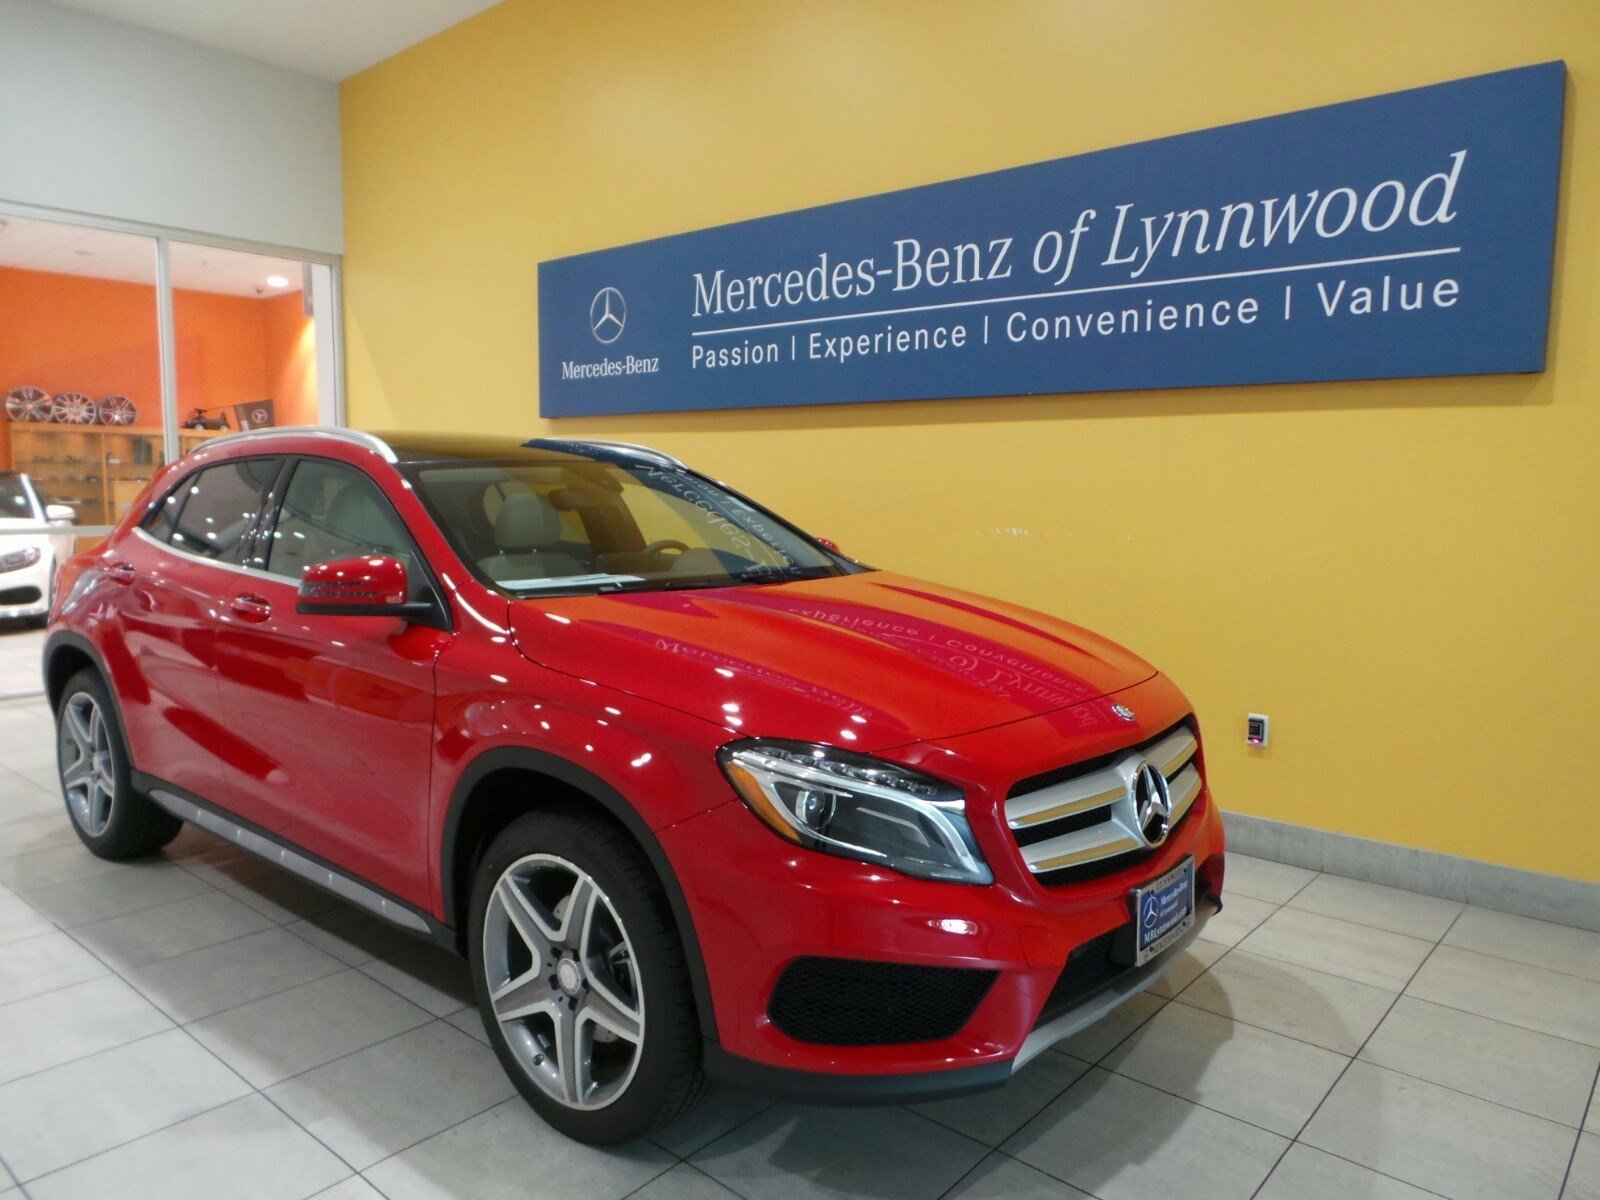 New 2017 mercedes benz gla gla250 4matic suv in lynnwood for Mercedes benz dealership seattle